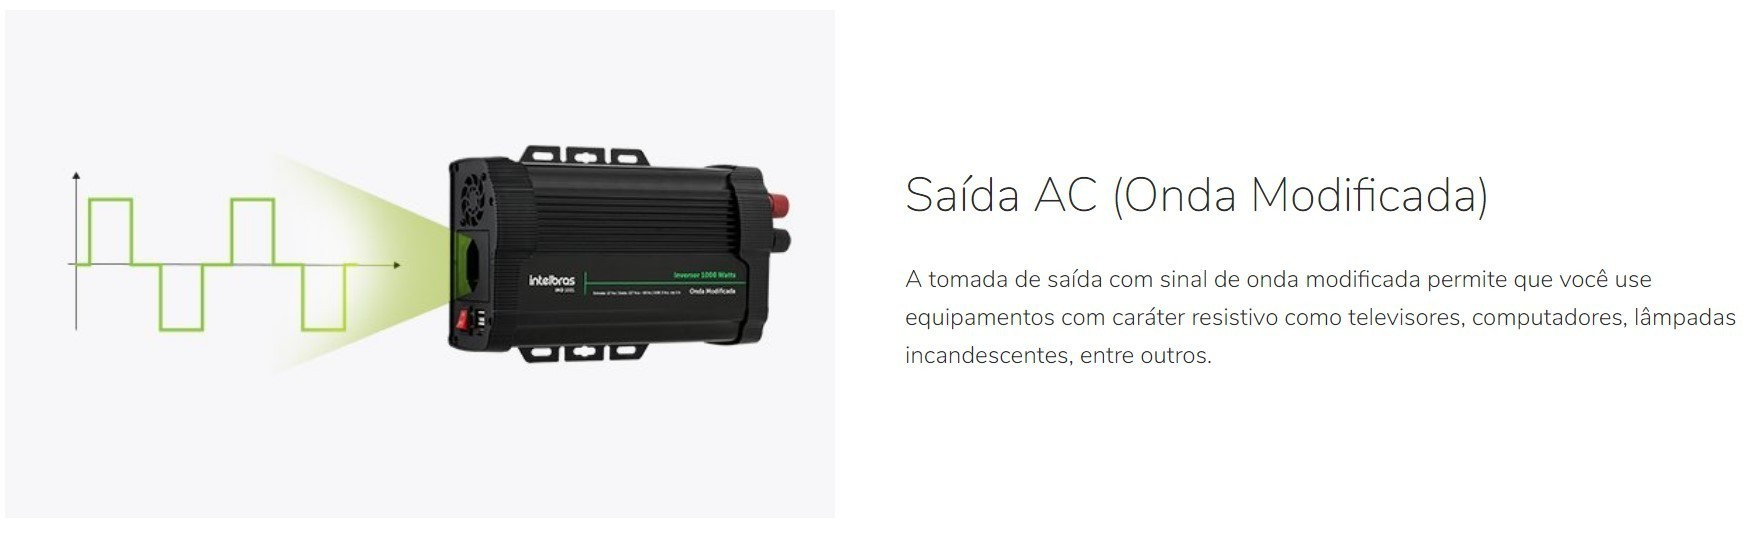 Inversor solar Off Grid 1000W Onda Modificada Intelbras IMD 1001 - 12V/127V